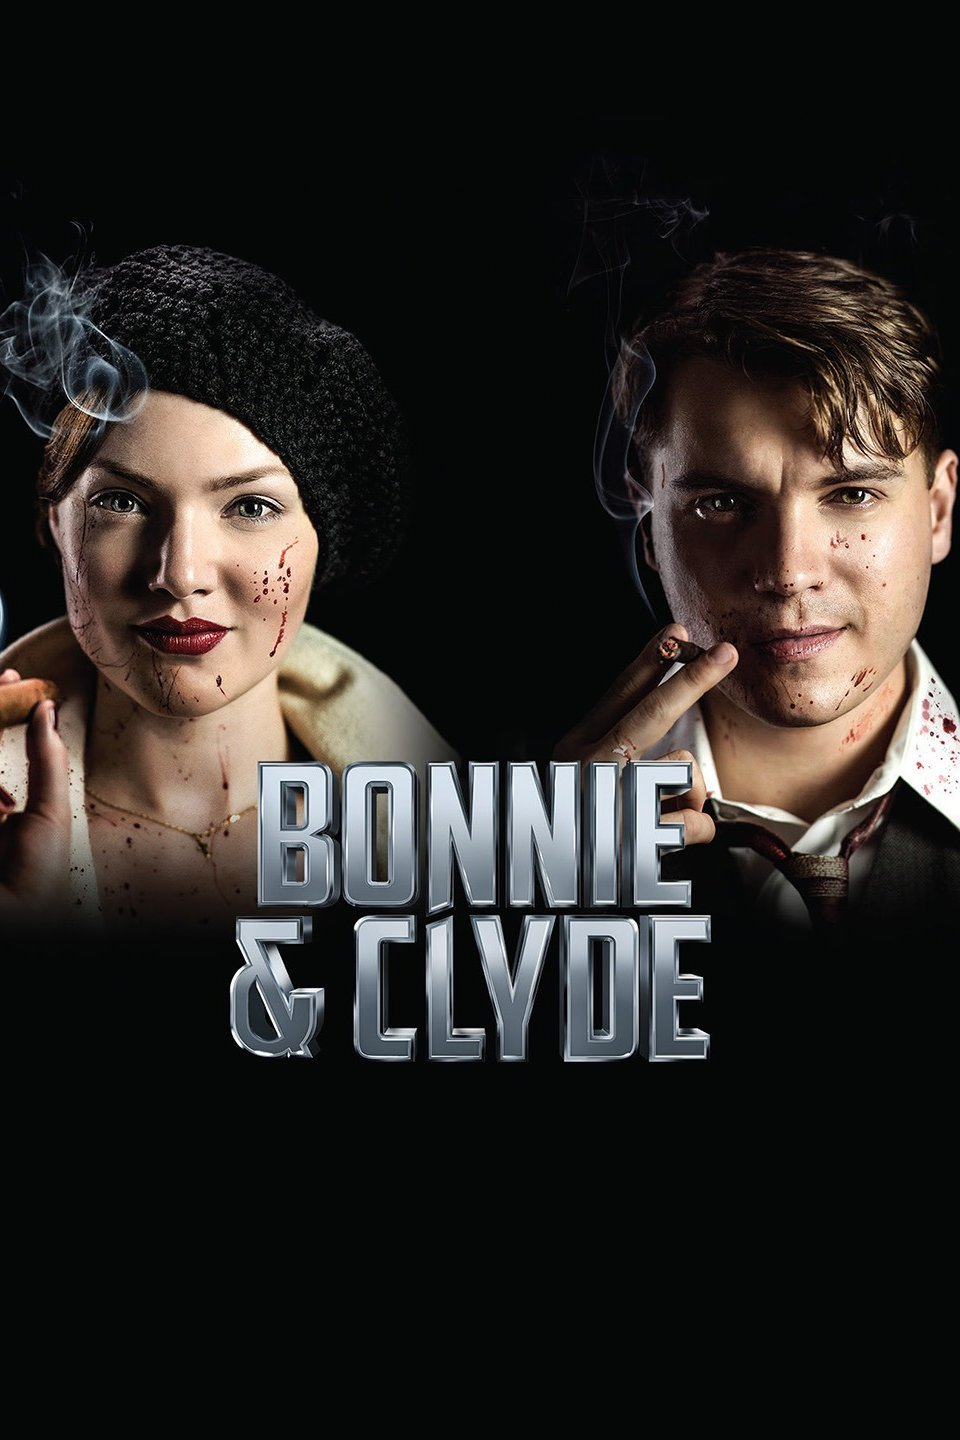 Bonnie and Clyde, 2013